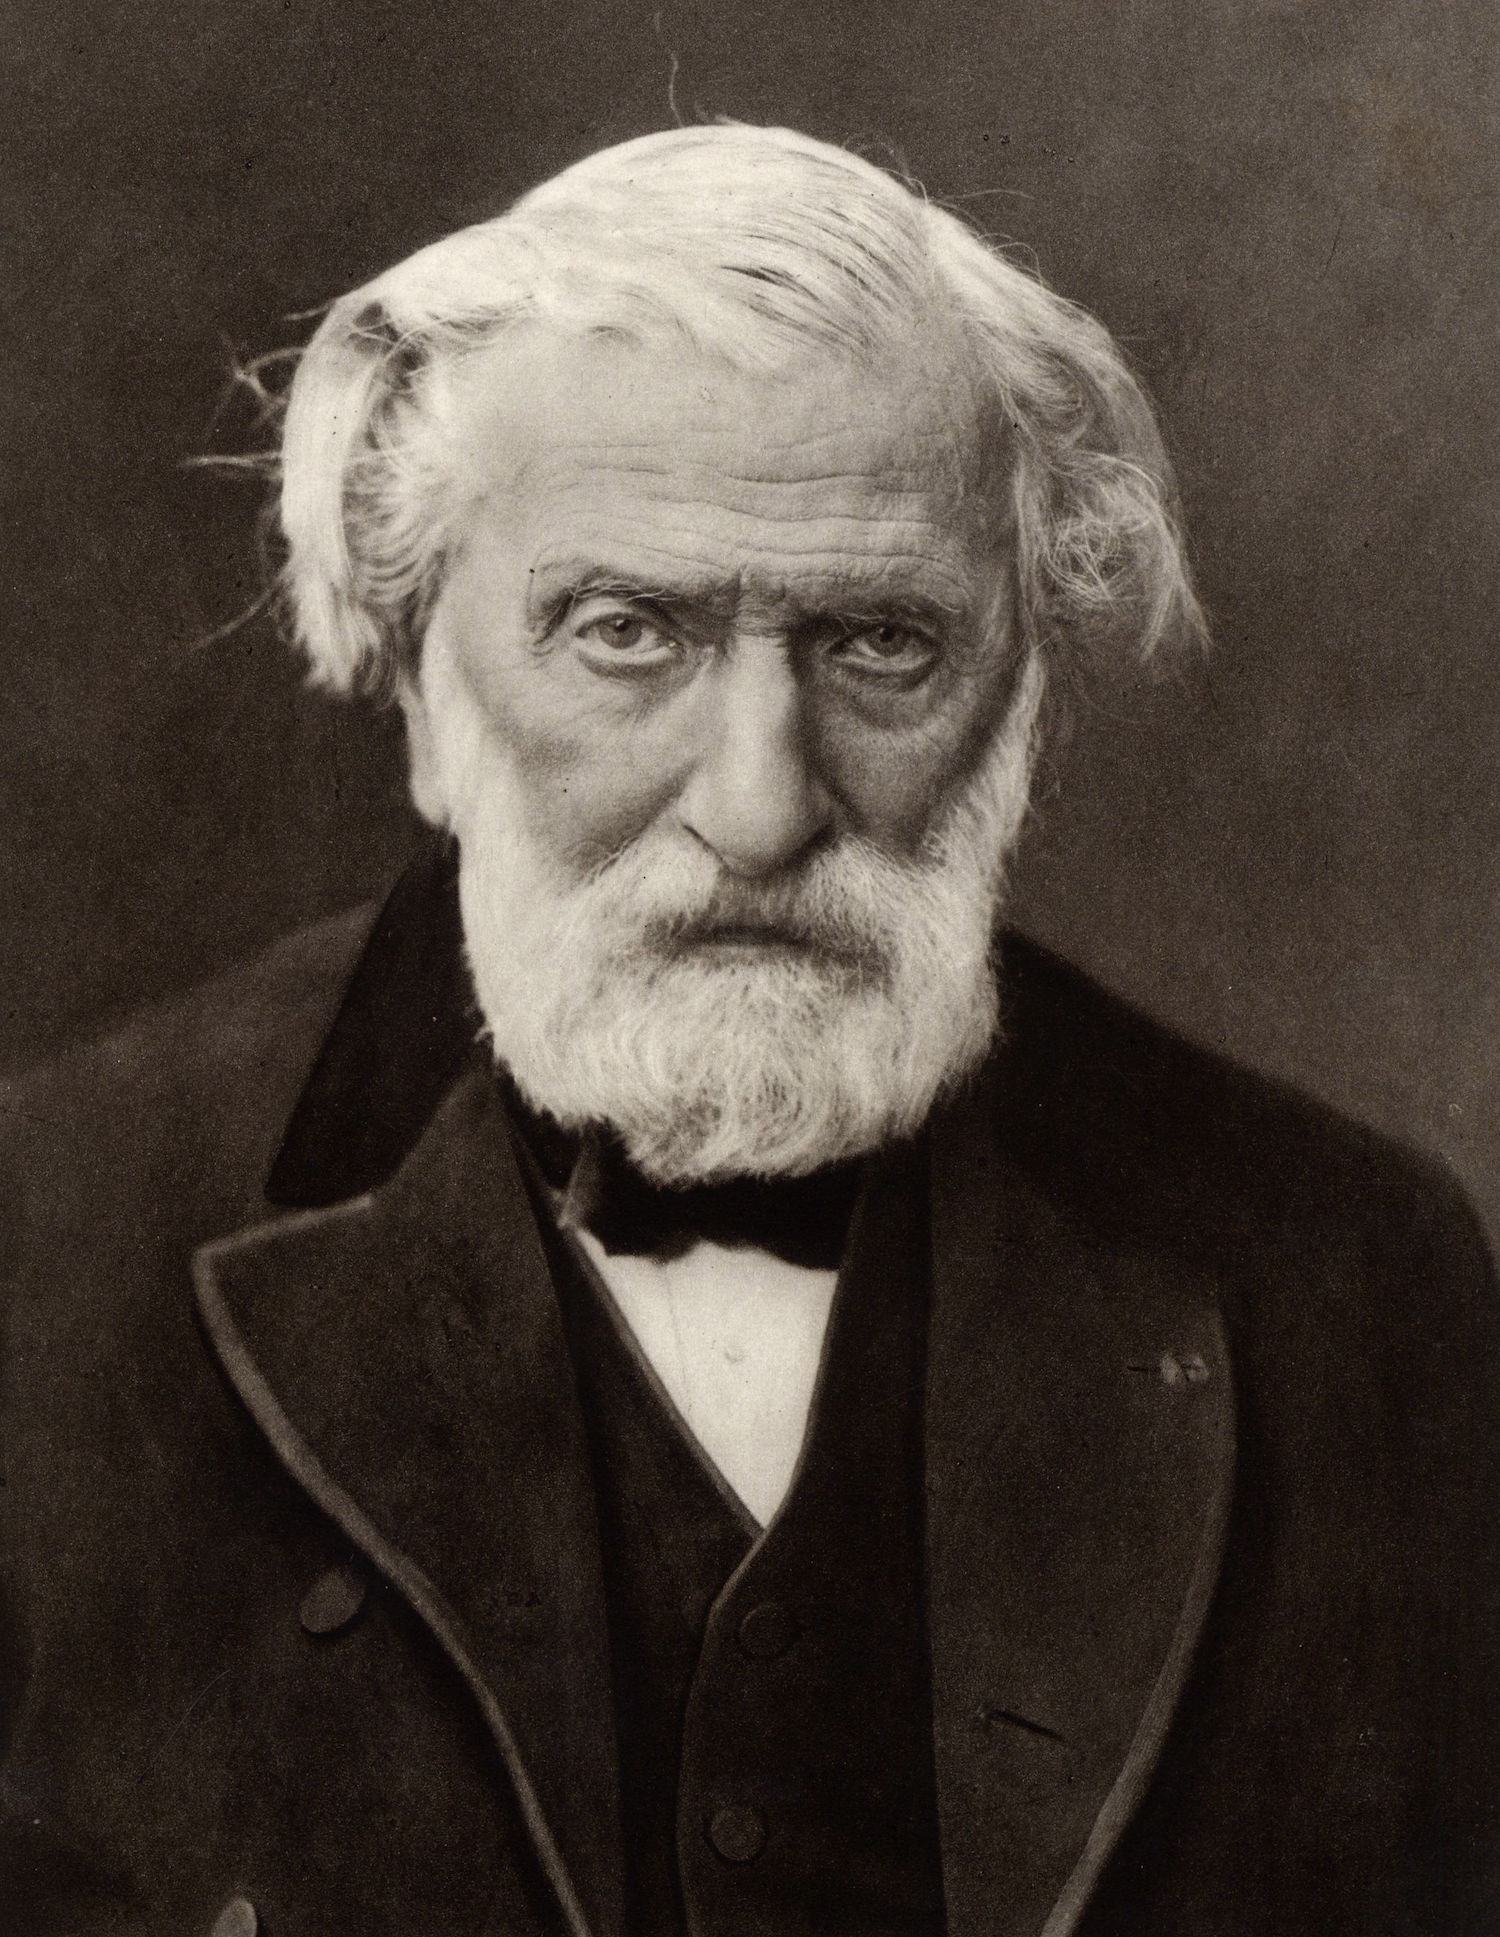 (Charles Louis) Ambroise Thomas (1811-1896) French composer and Director of the Paris Conservatoire from 1871. From a photograph by Nadar, pseudonym of Gaspard-Felix Tournachon (1820-1910).